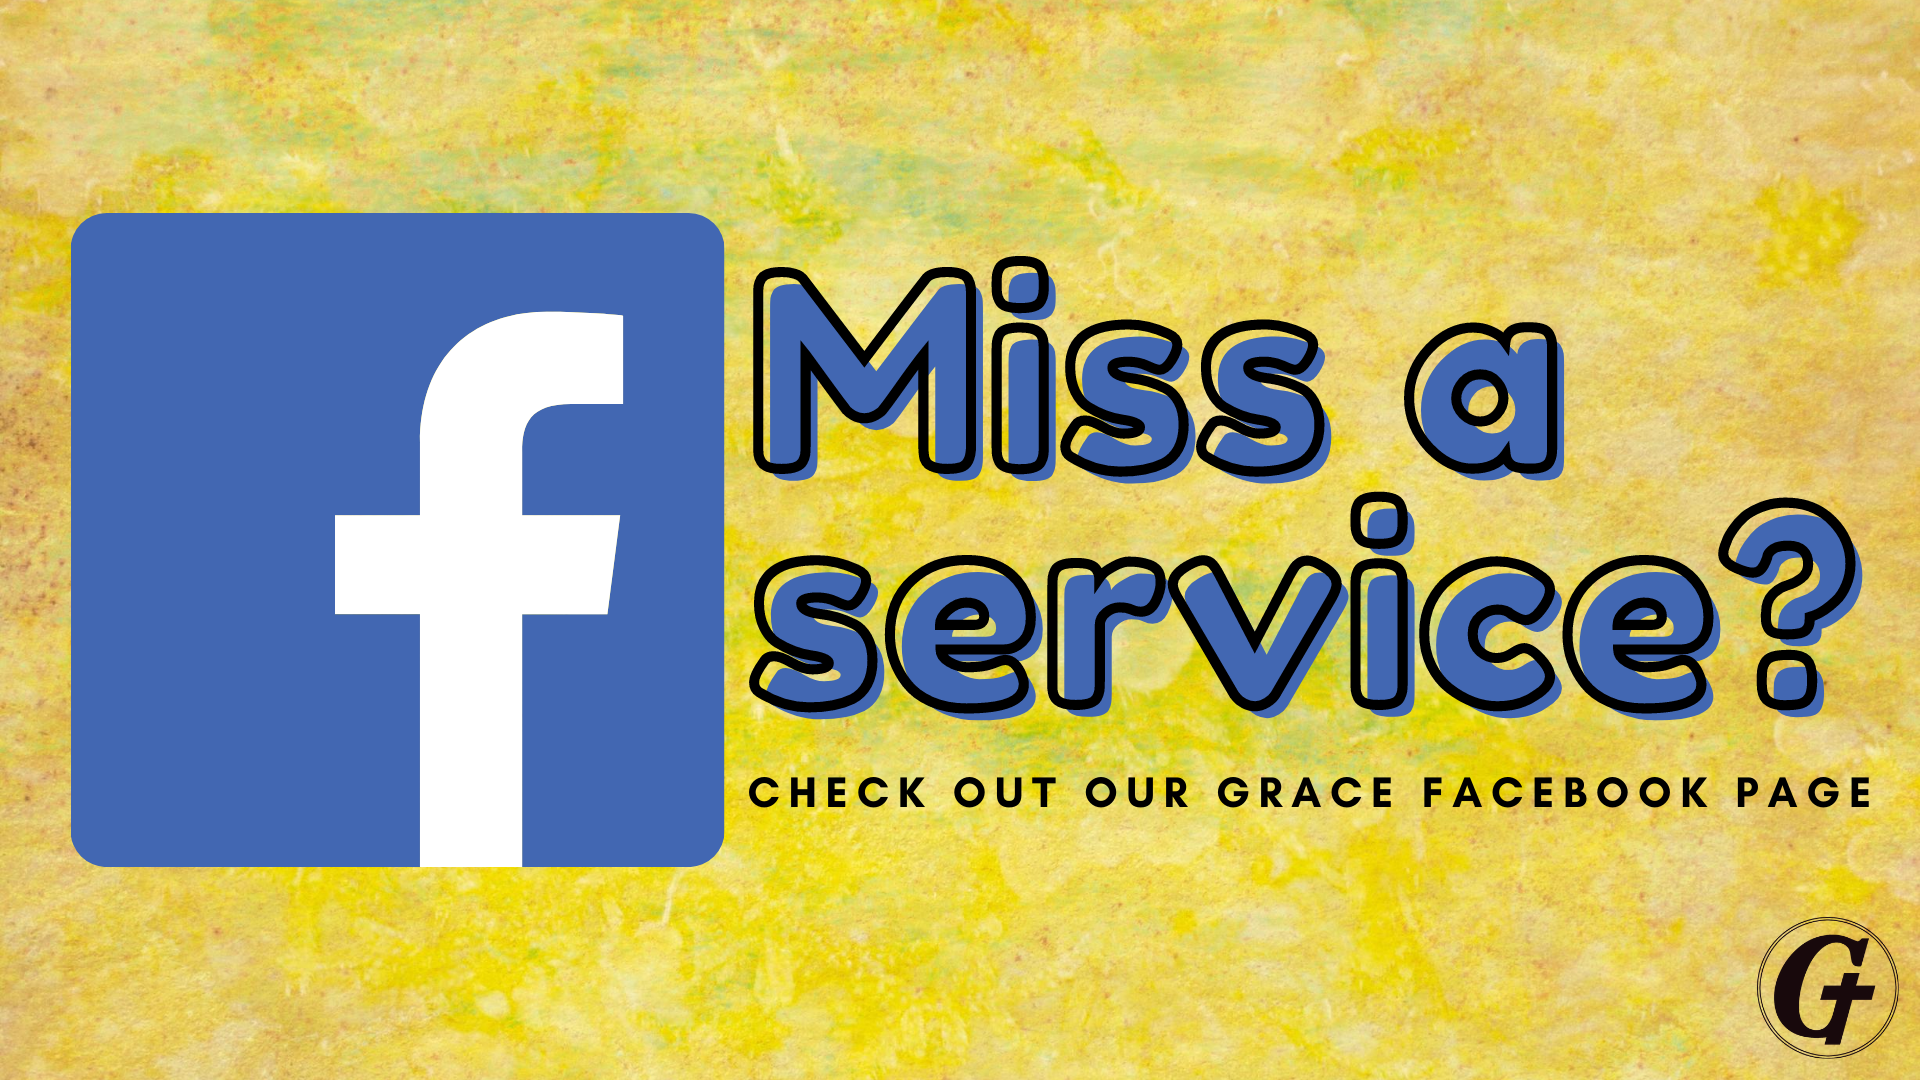 Miss a service_ 2.png